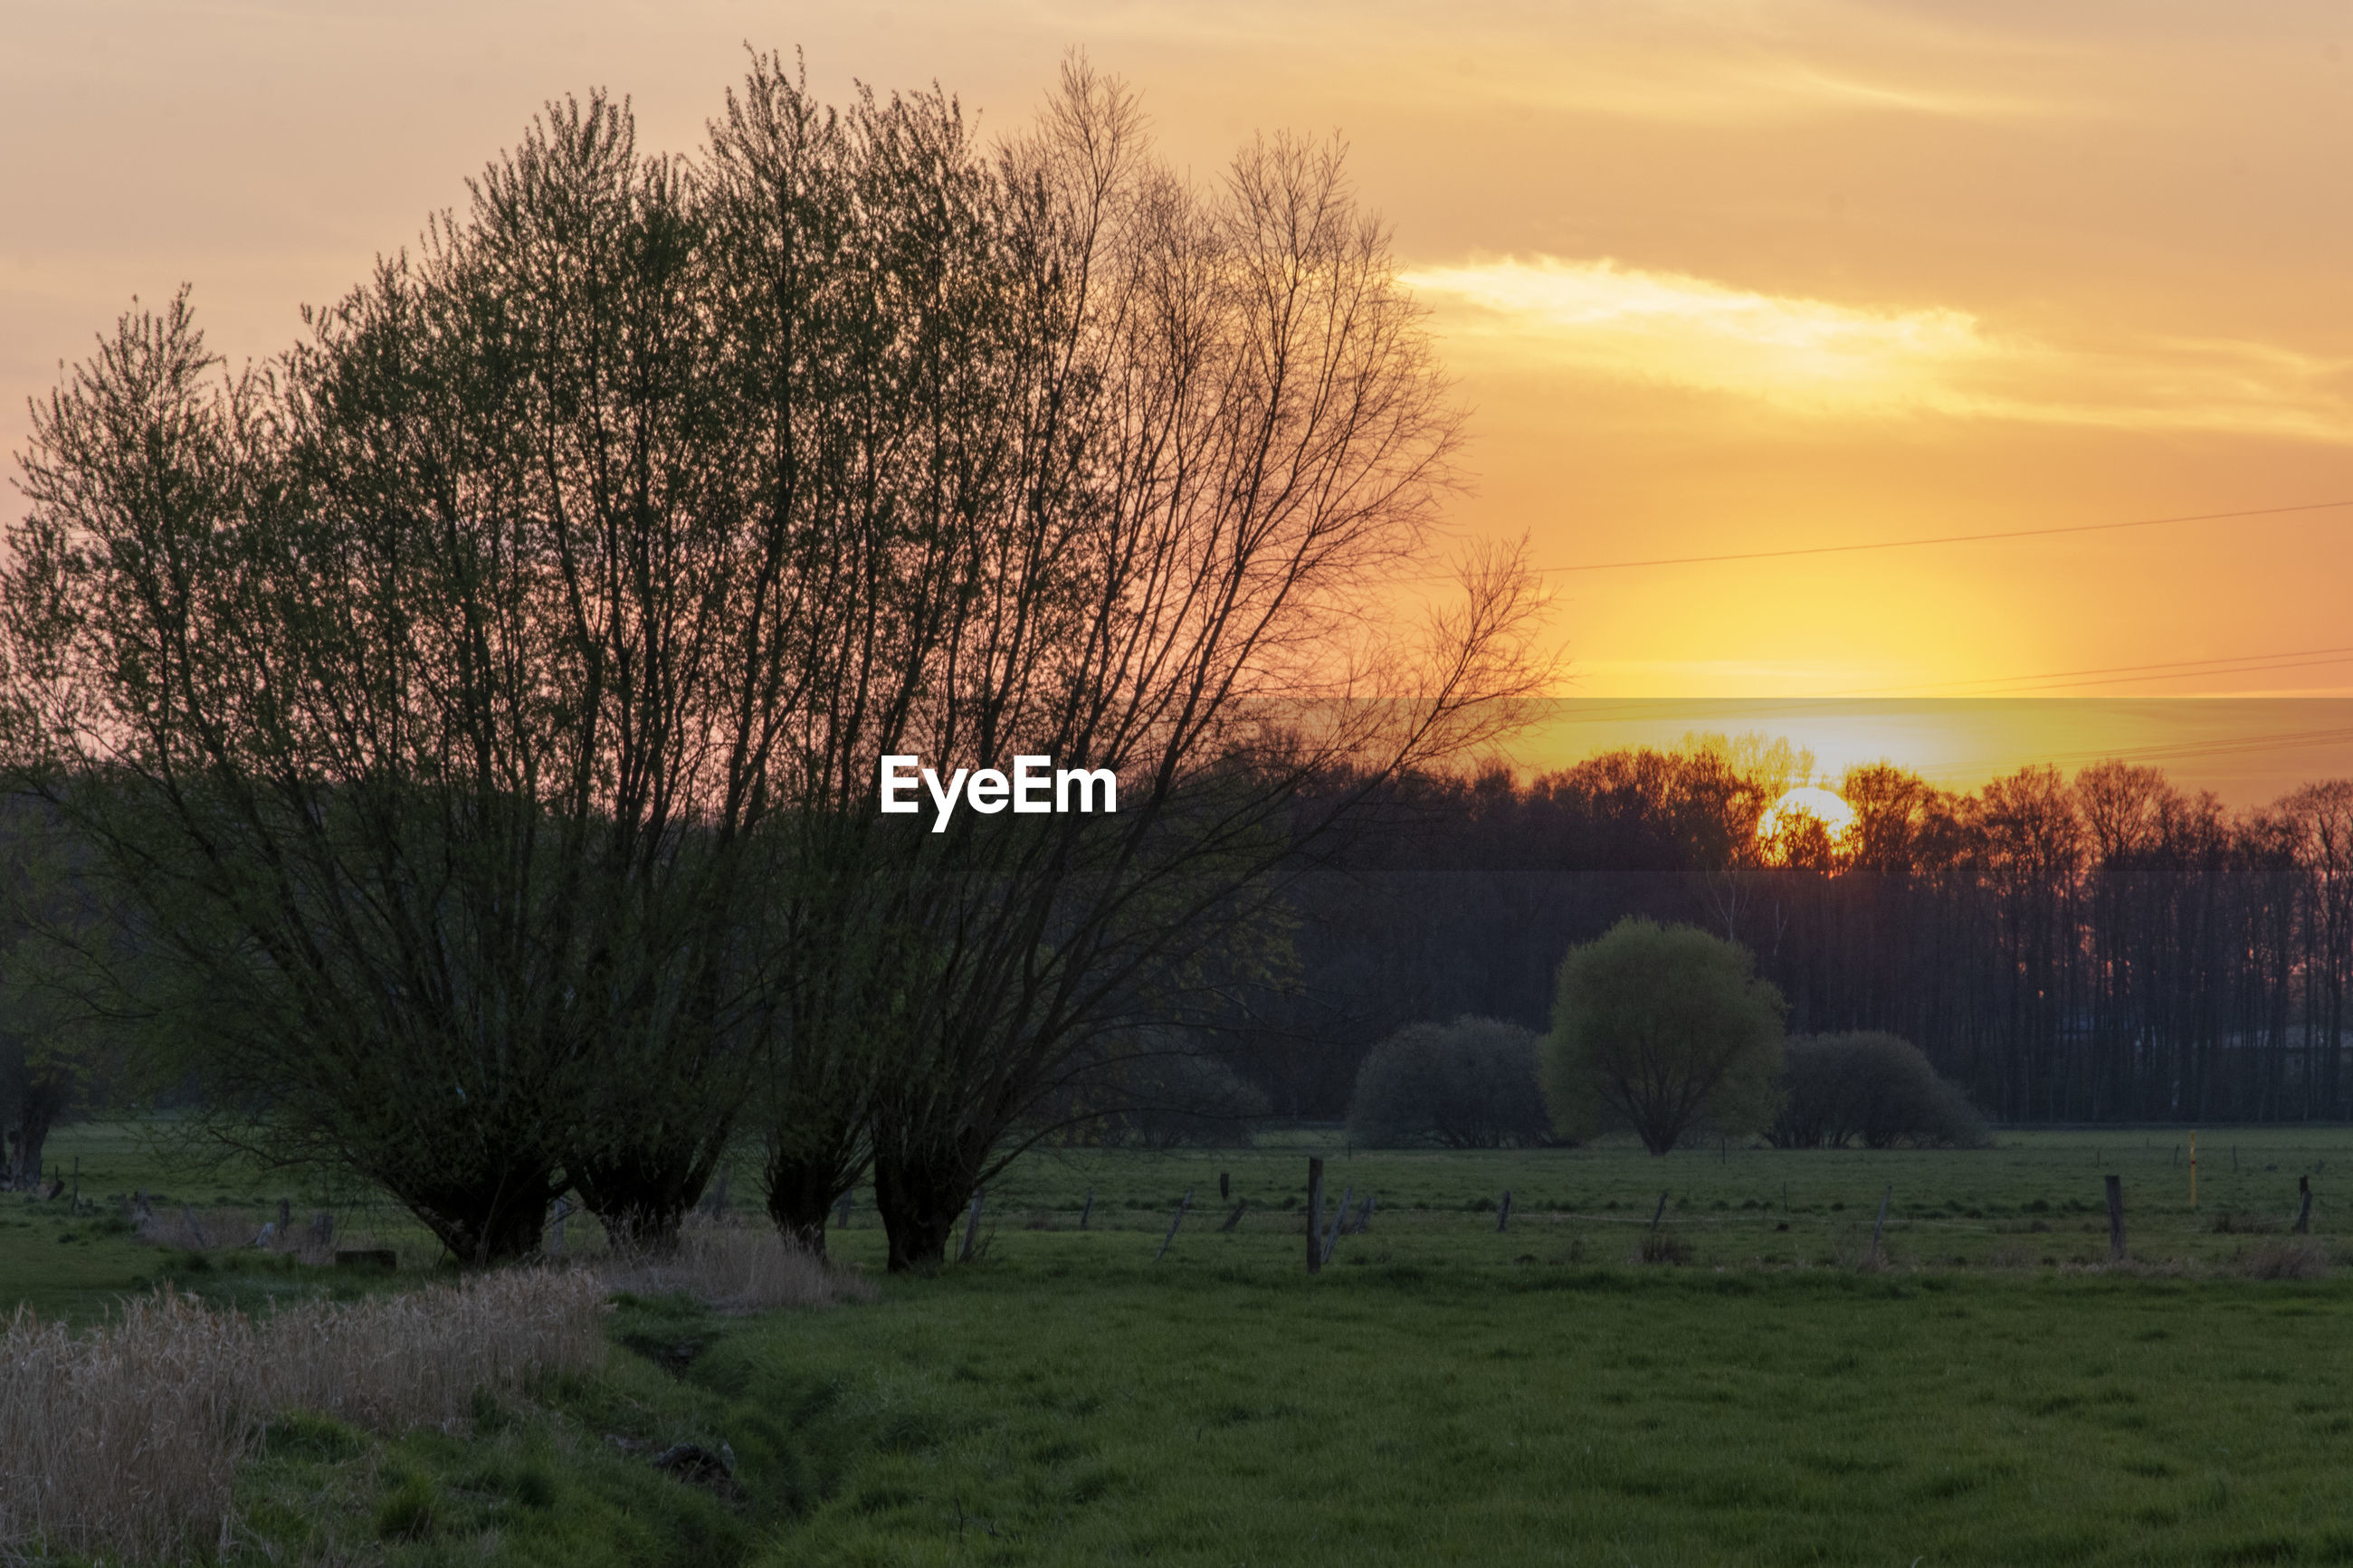 TREES ON FIELD DURING SUNSET